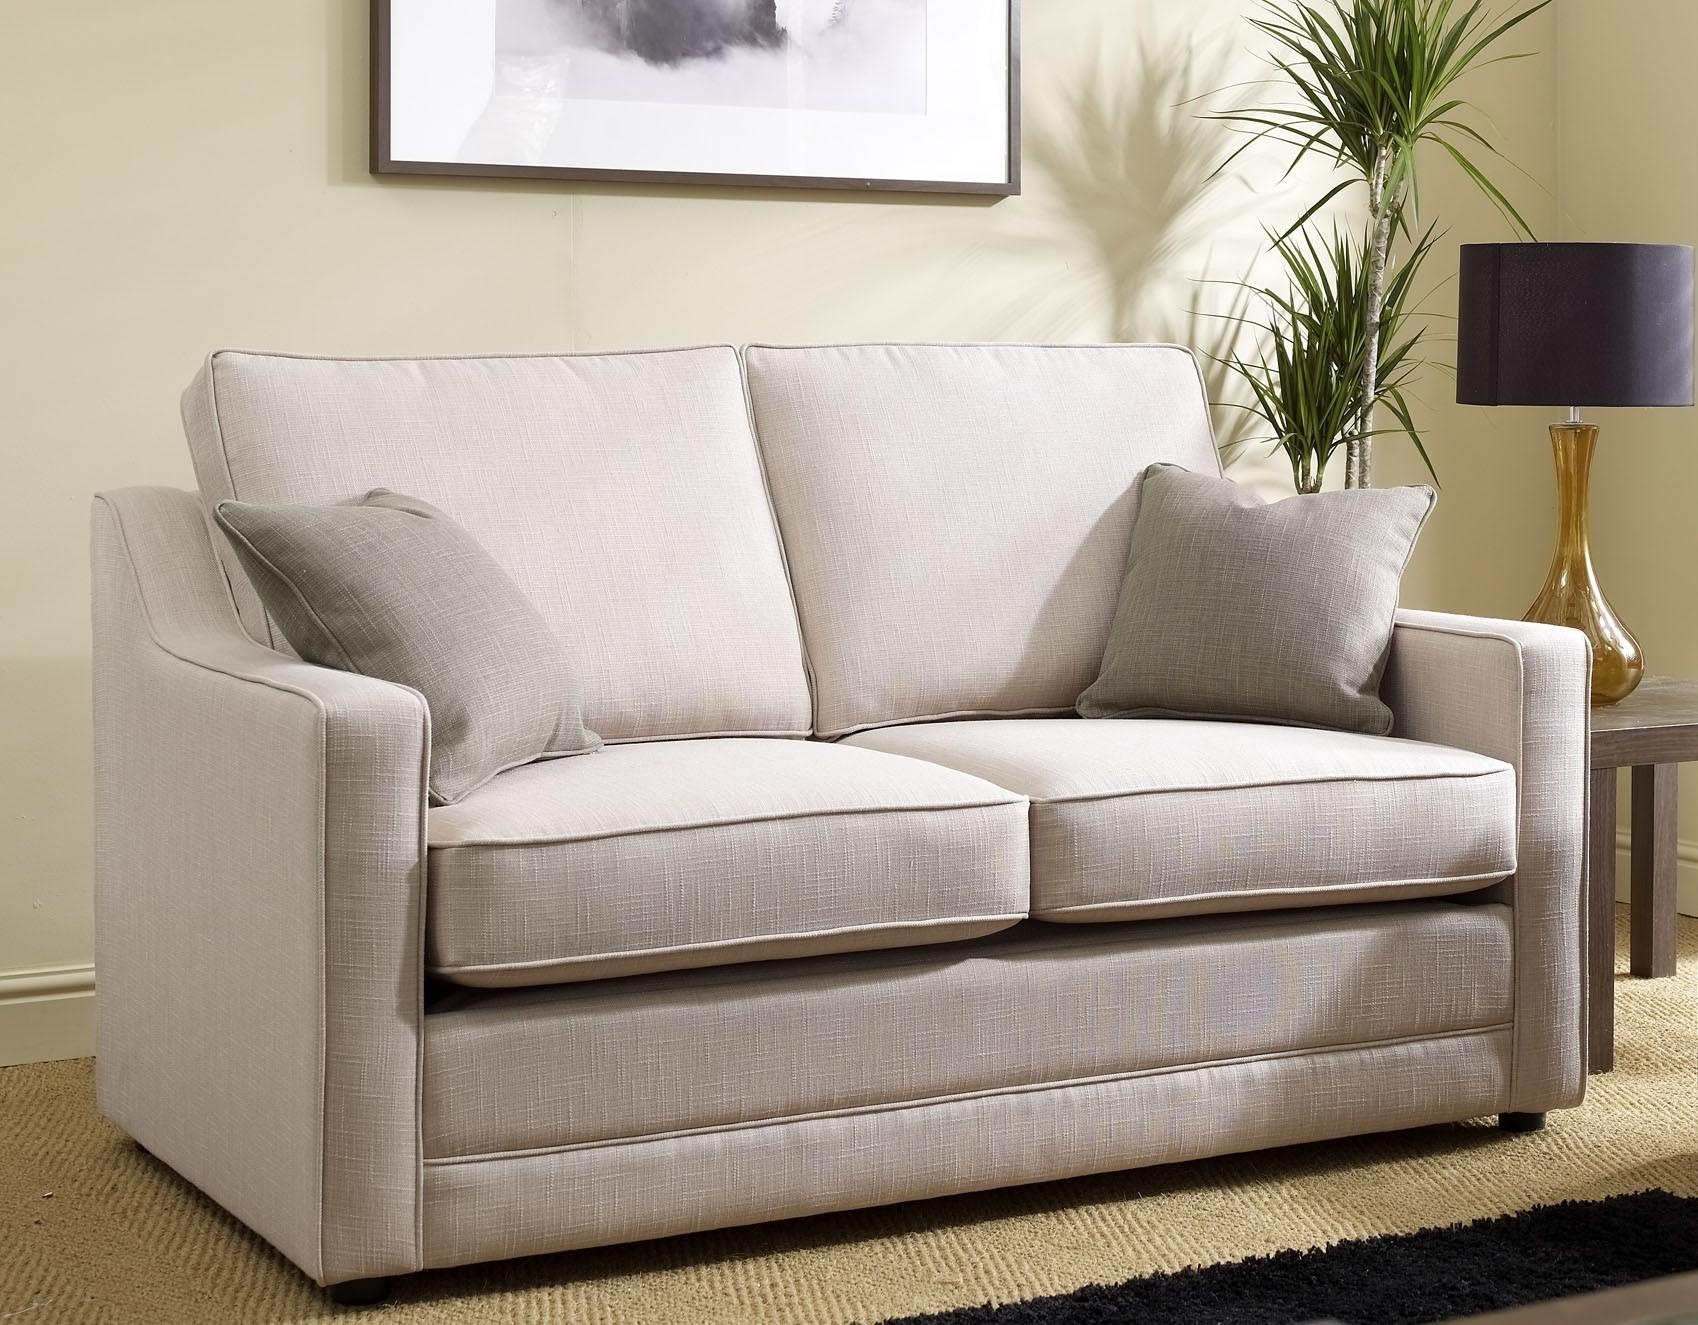 Small Sofa Beds For Small Rooms | Tehranmix Decoration In Mini Sofa Sleepers (Image 15 of 20)